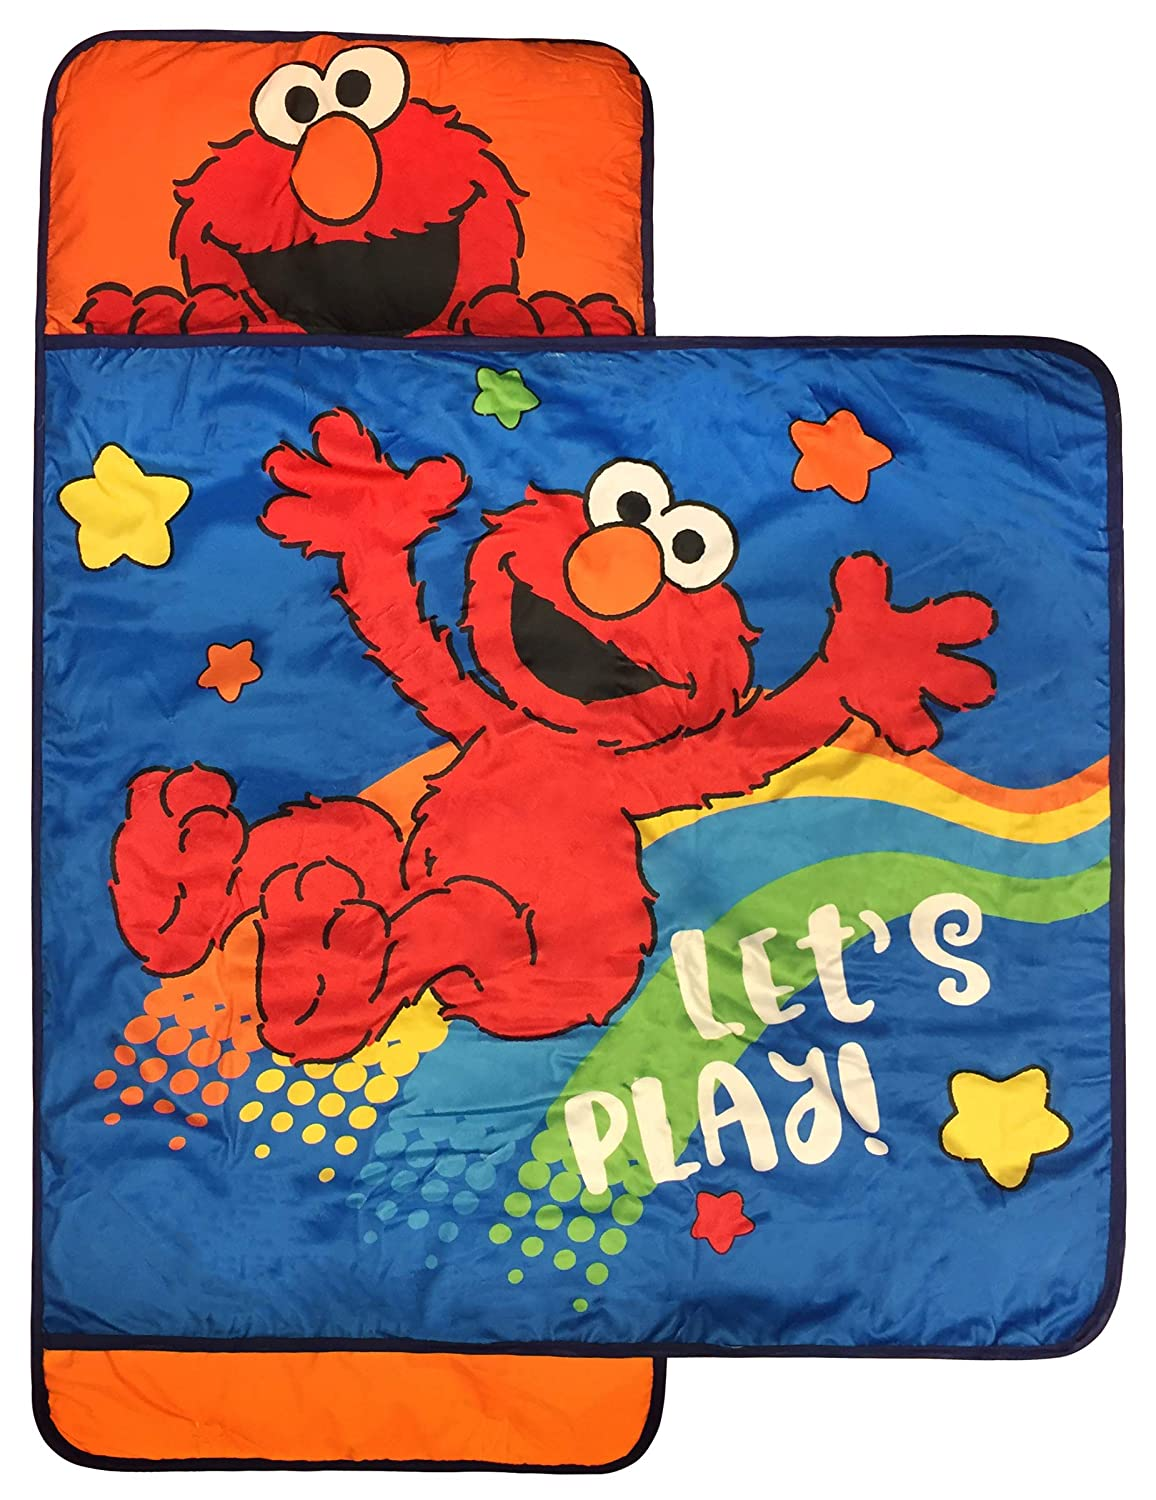 Sesame street lets play nap mat built in pillow and blanket featuring elmo super soft microfiber kids toddler childrens bedding ages 3 7 official